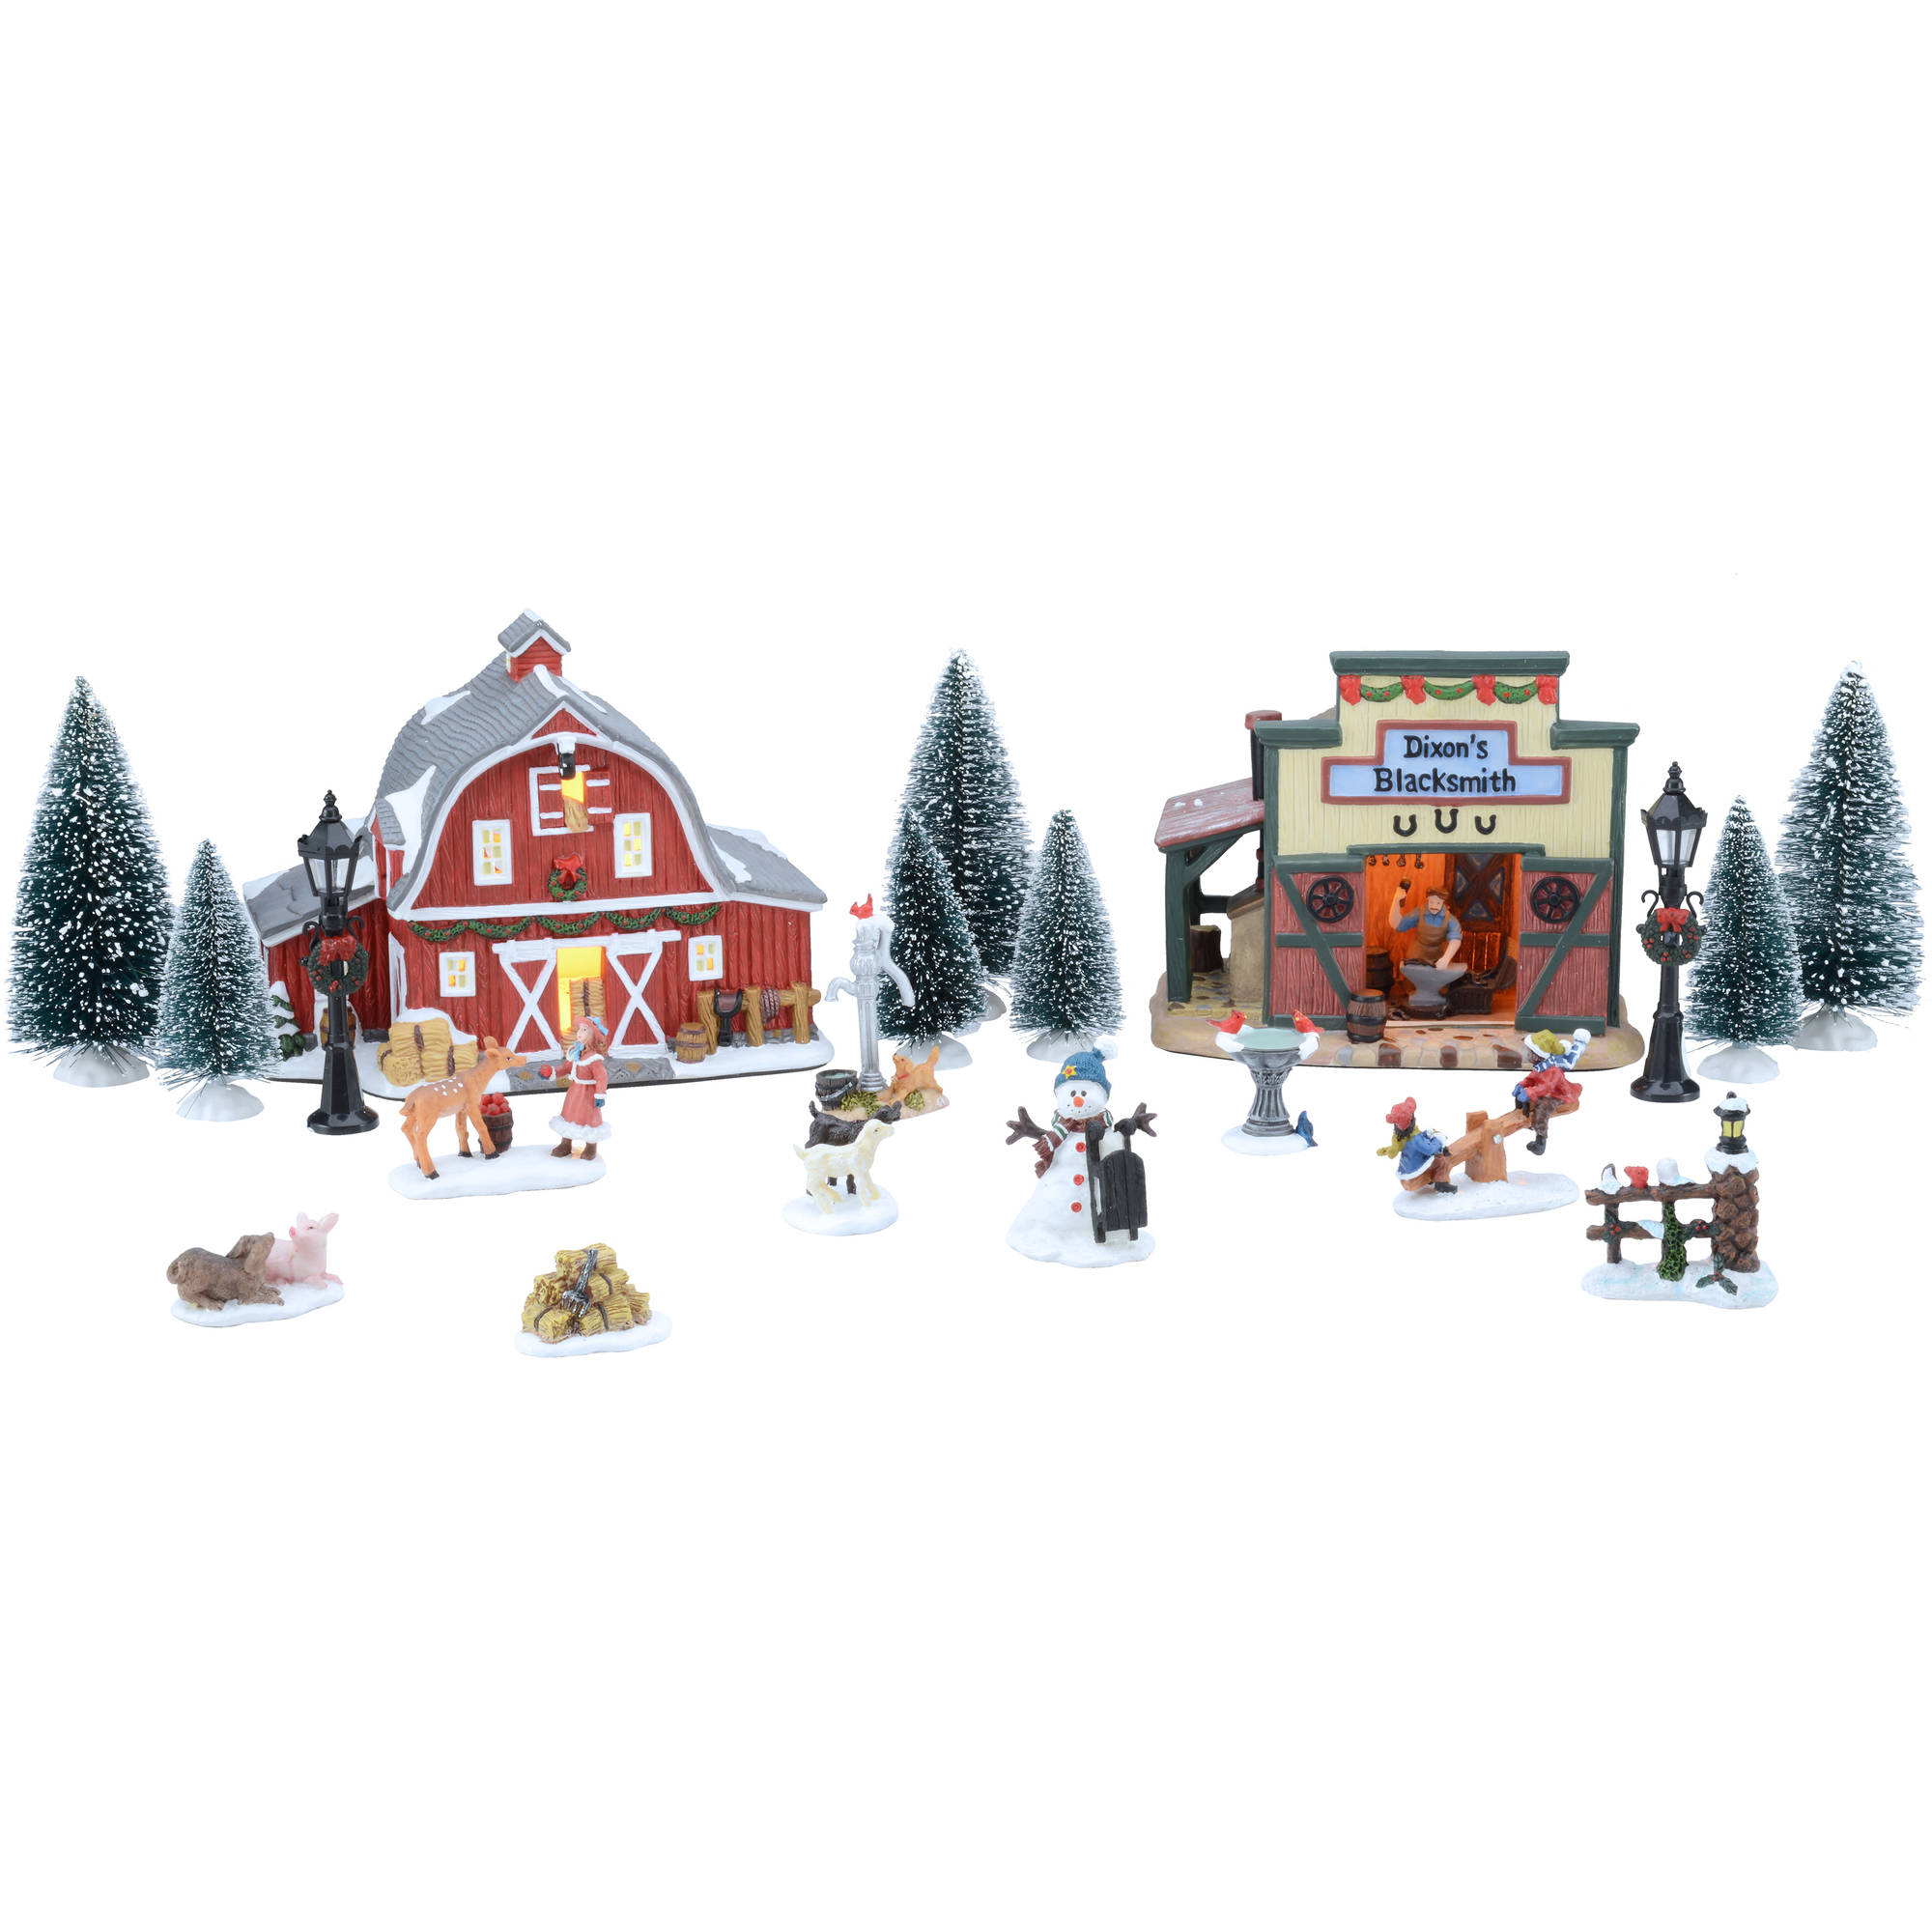 holiday time 20 piece country set christmas village walmart comholiday time 20 piece country set christmas village